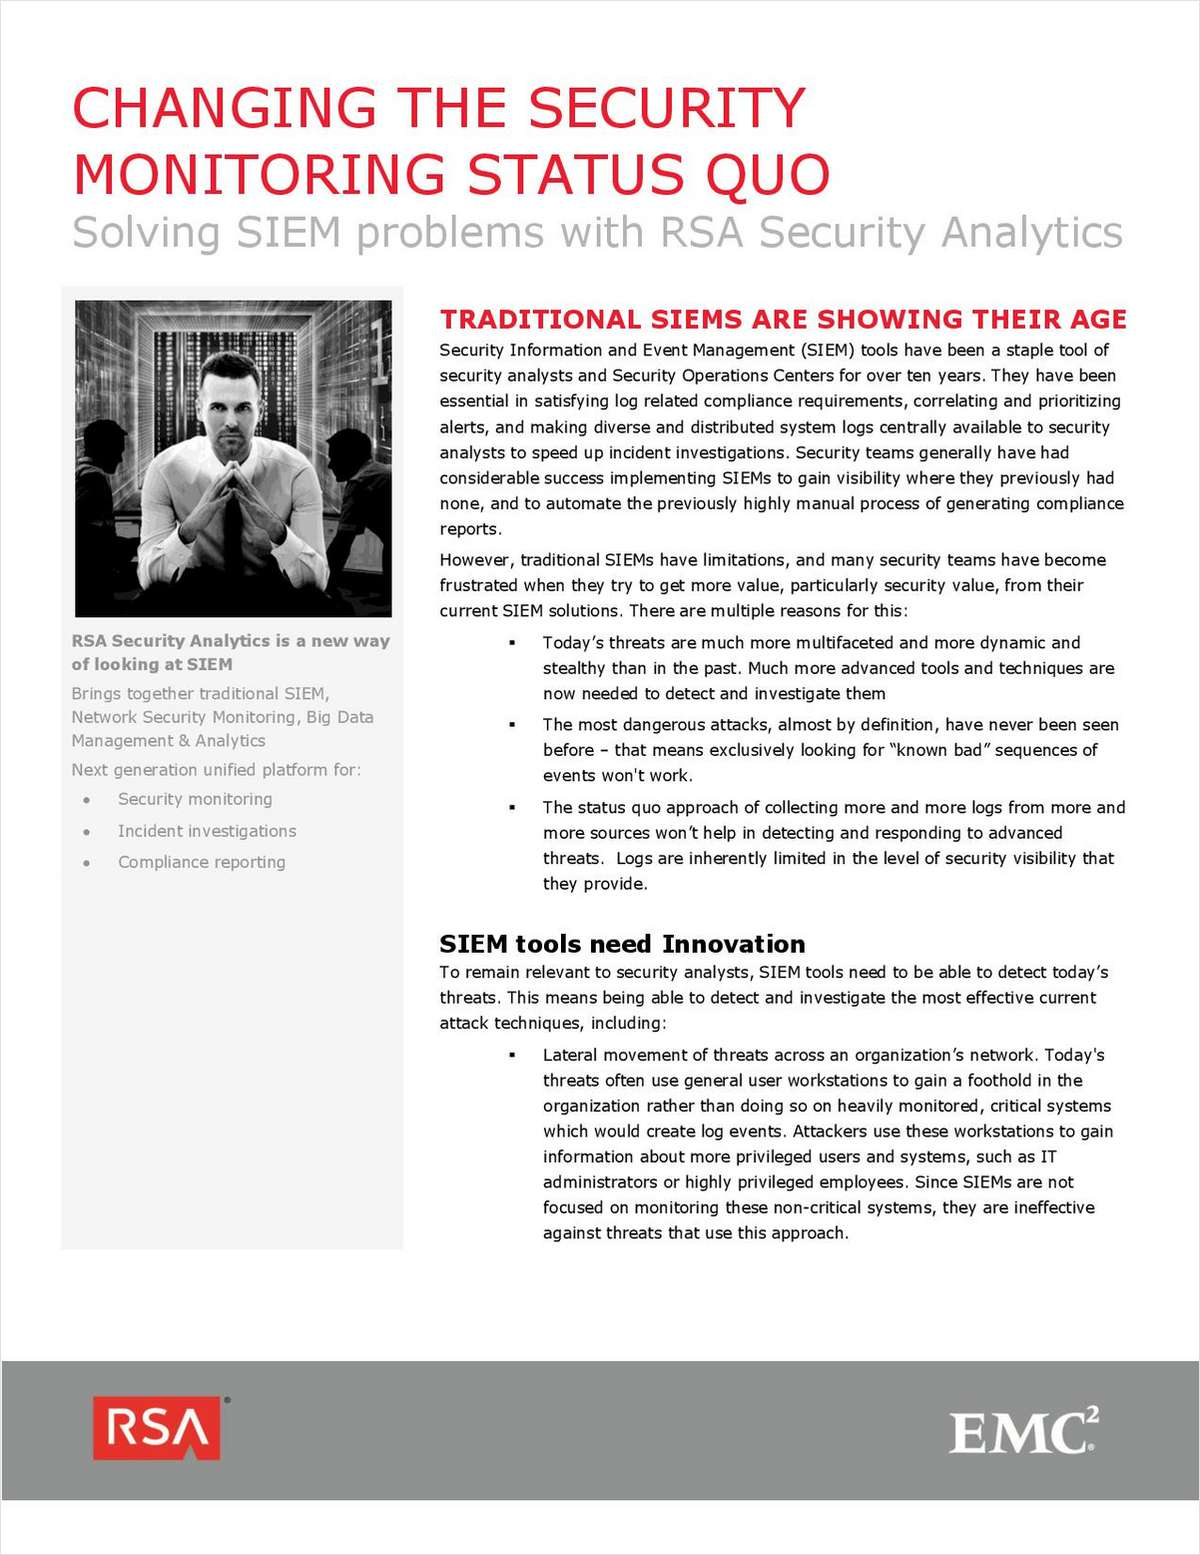 Changing the Security Monitoring Status Quo